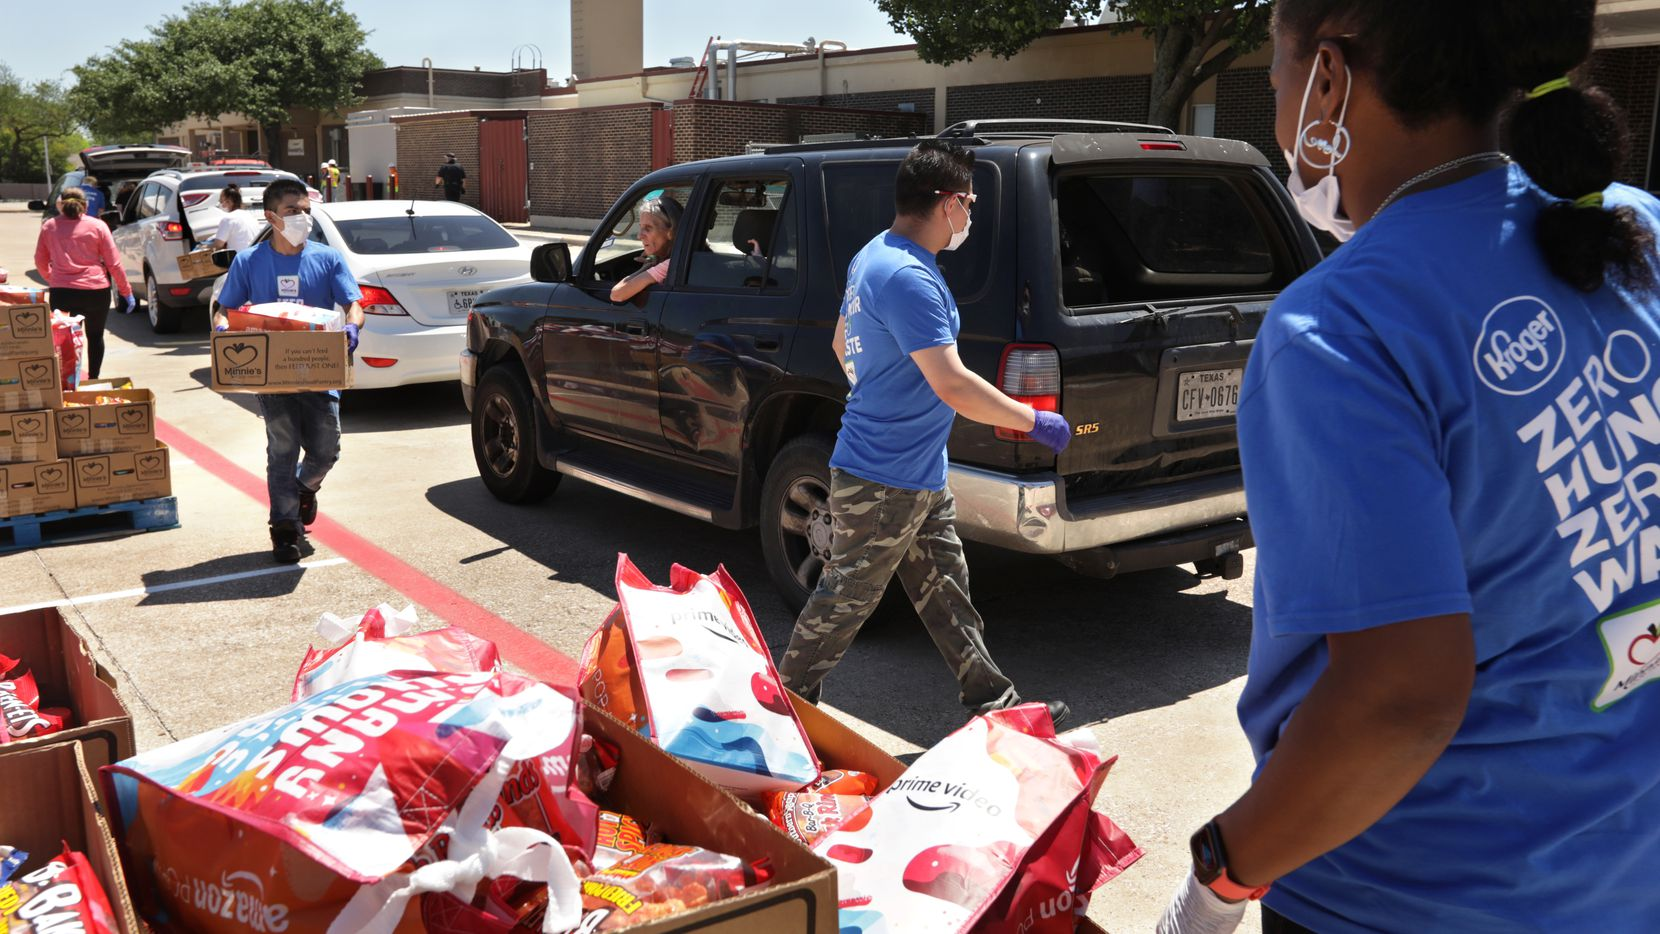 Volunteers from Minnie's Food Pantry are pictured distributing food in Plano. On serving more than 750 families at Bowman Middle School in Plano. The SLPS Community Center will hold a similar food distribution event on Sunday, June 28.